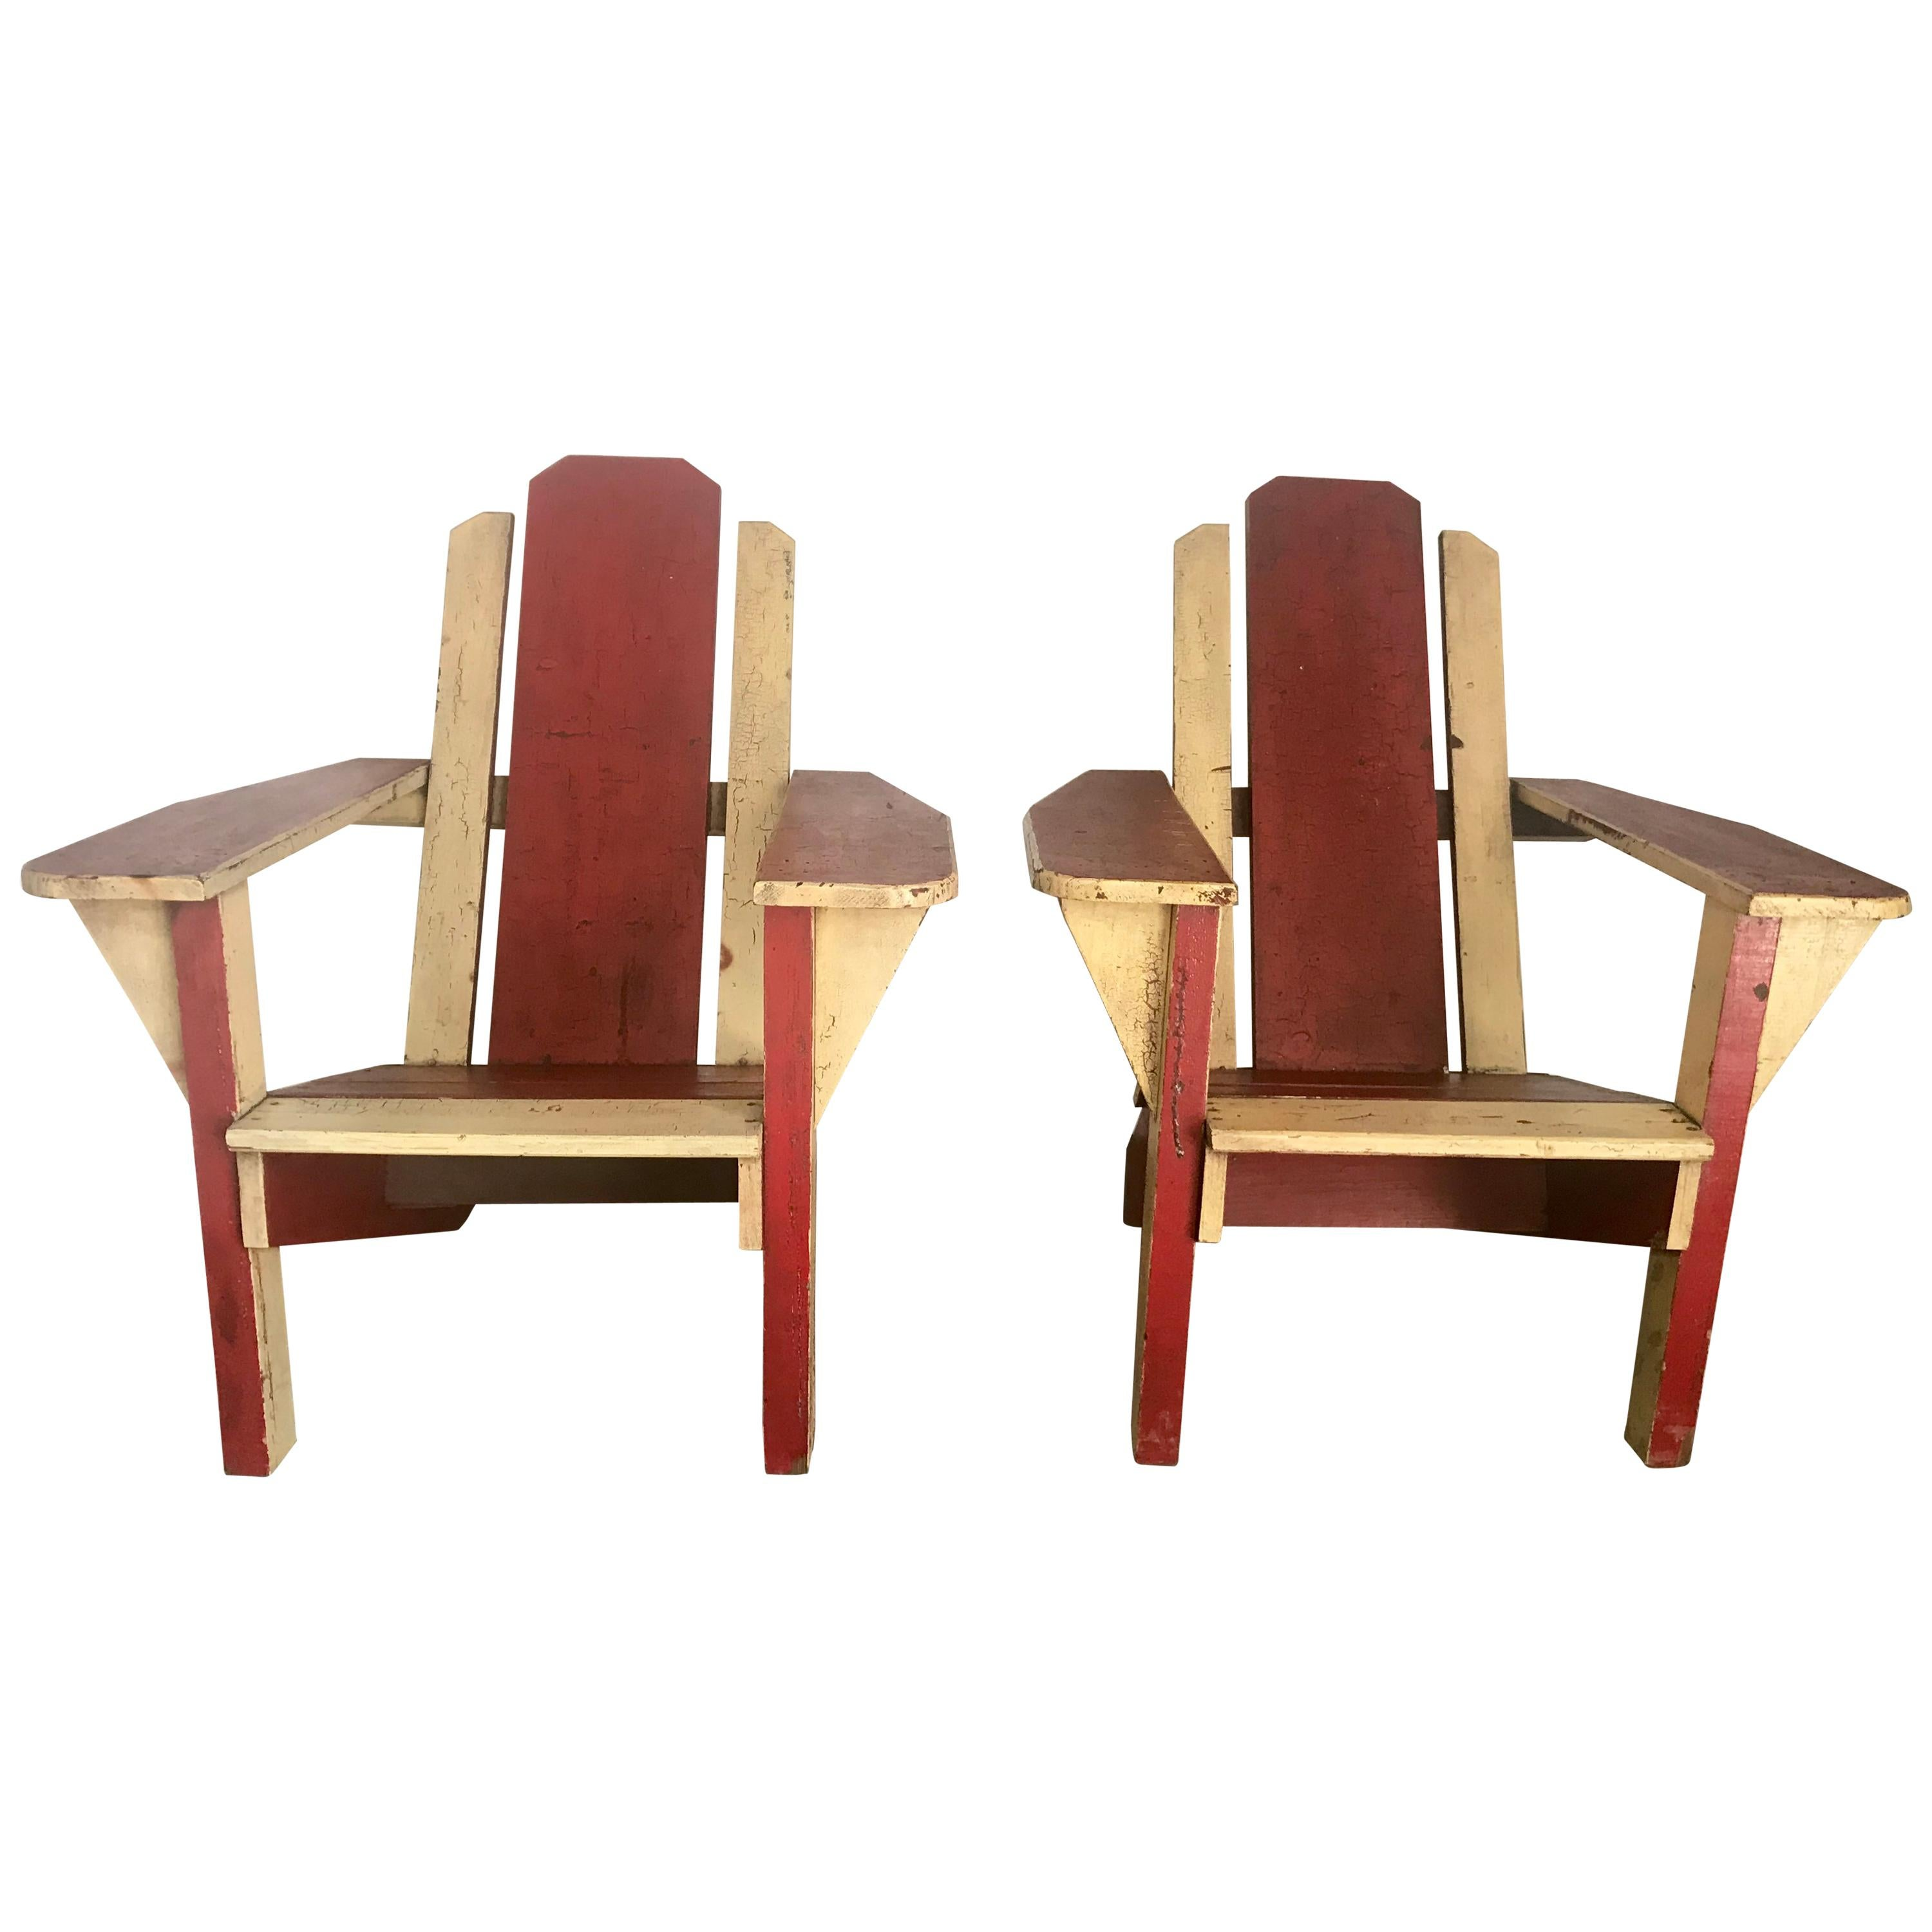 Pair Of 1930s Painted Two Tone Adirondack, Westport Deck Chairs